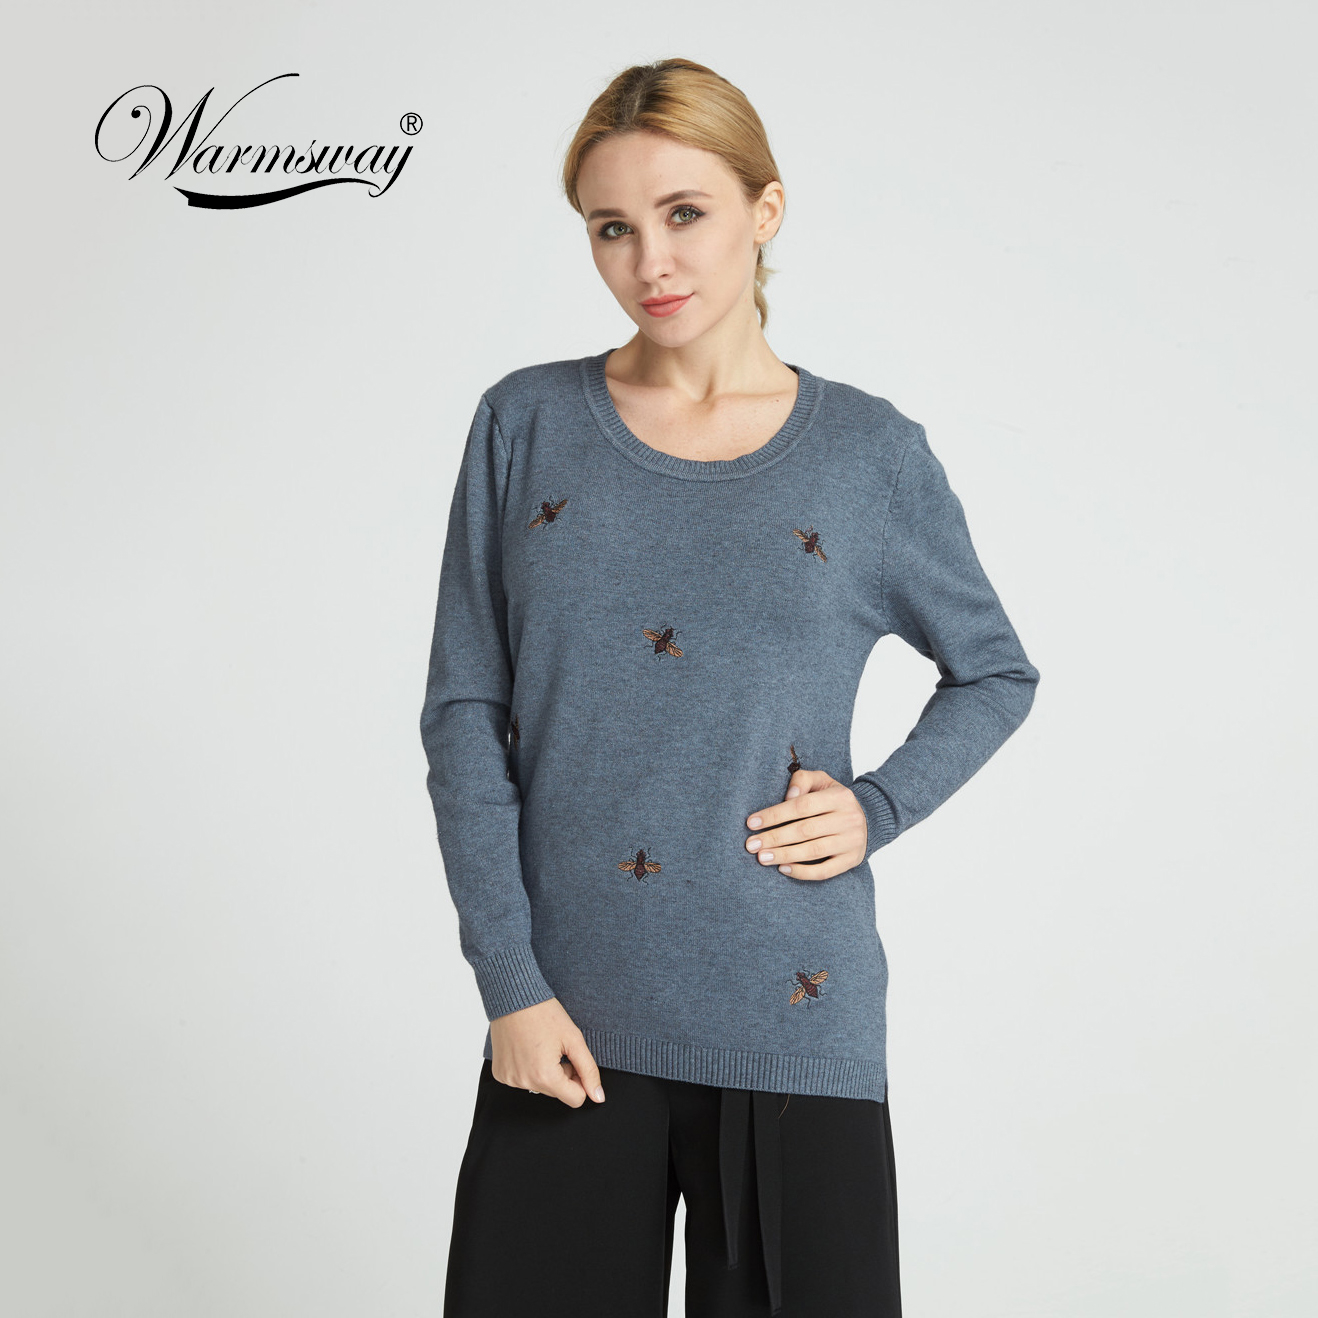 Warmsway 2018 Fall Winter Bee Embroidery Sweaters PlusSize 2XL Women Pullovers Oversized Knitted Tops female jumper C-153